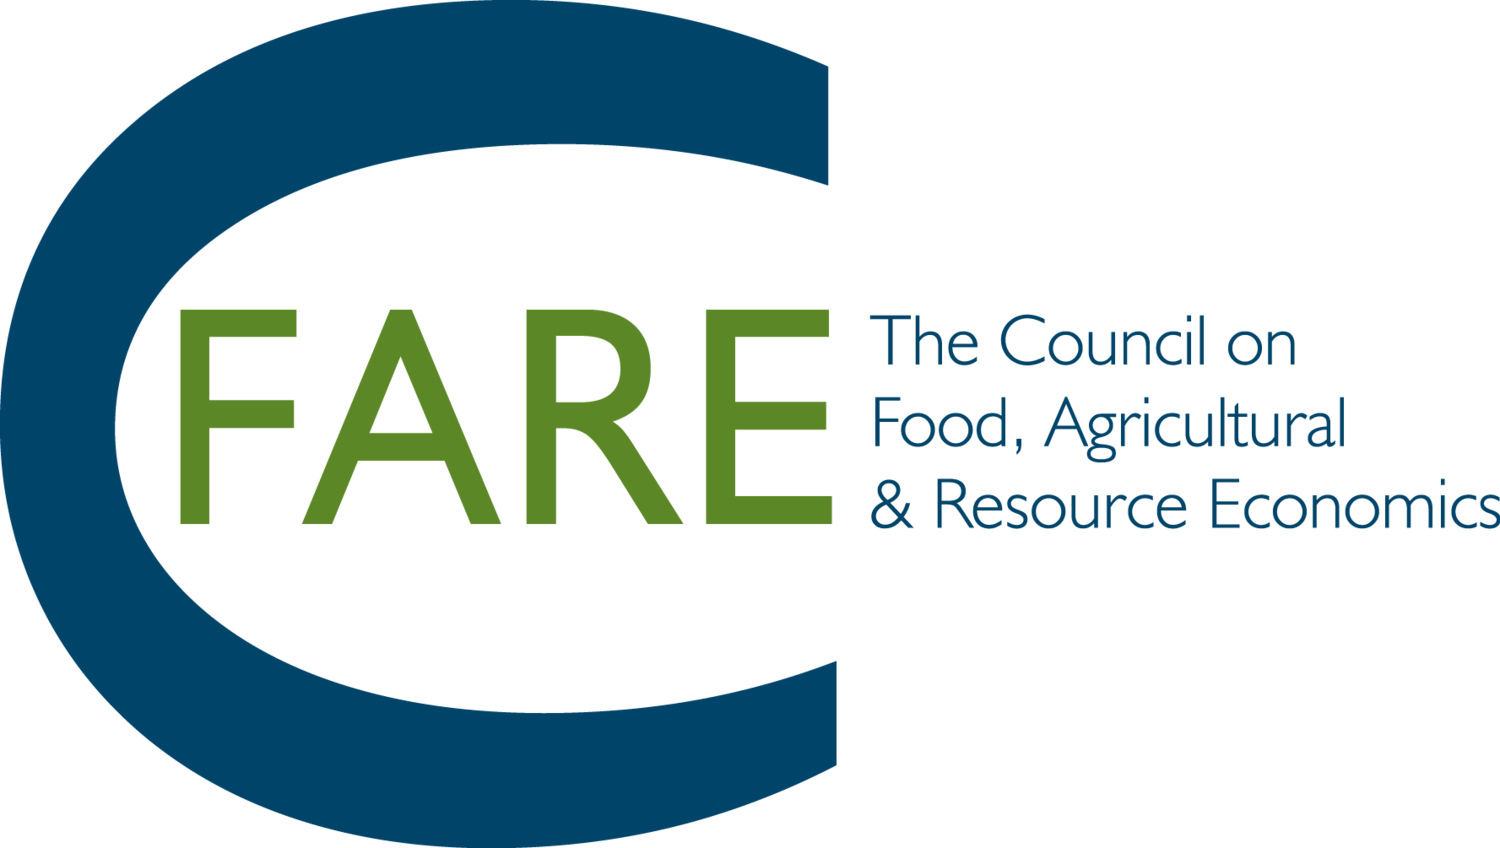 The Council on Food, Agricultural and Resource Economics